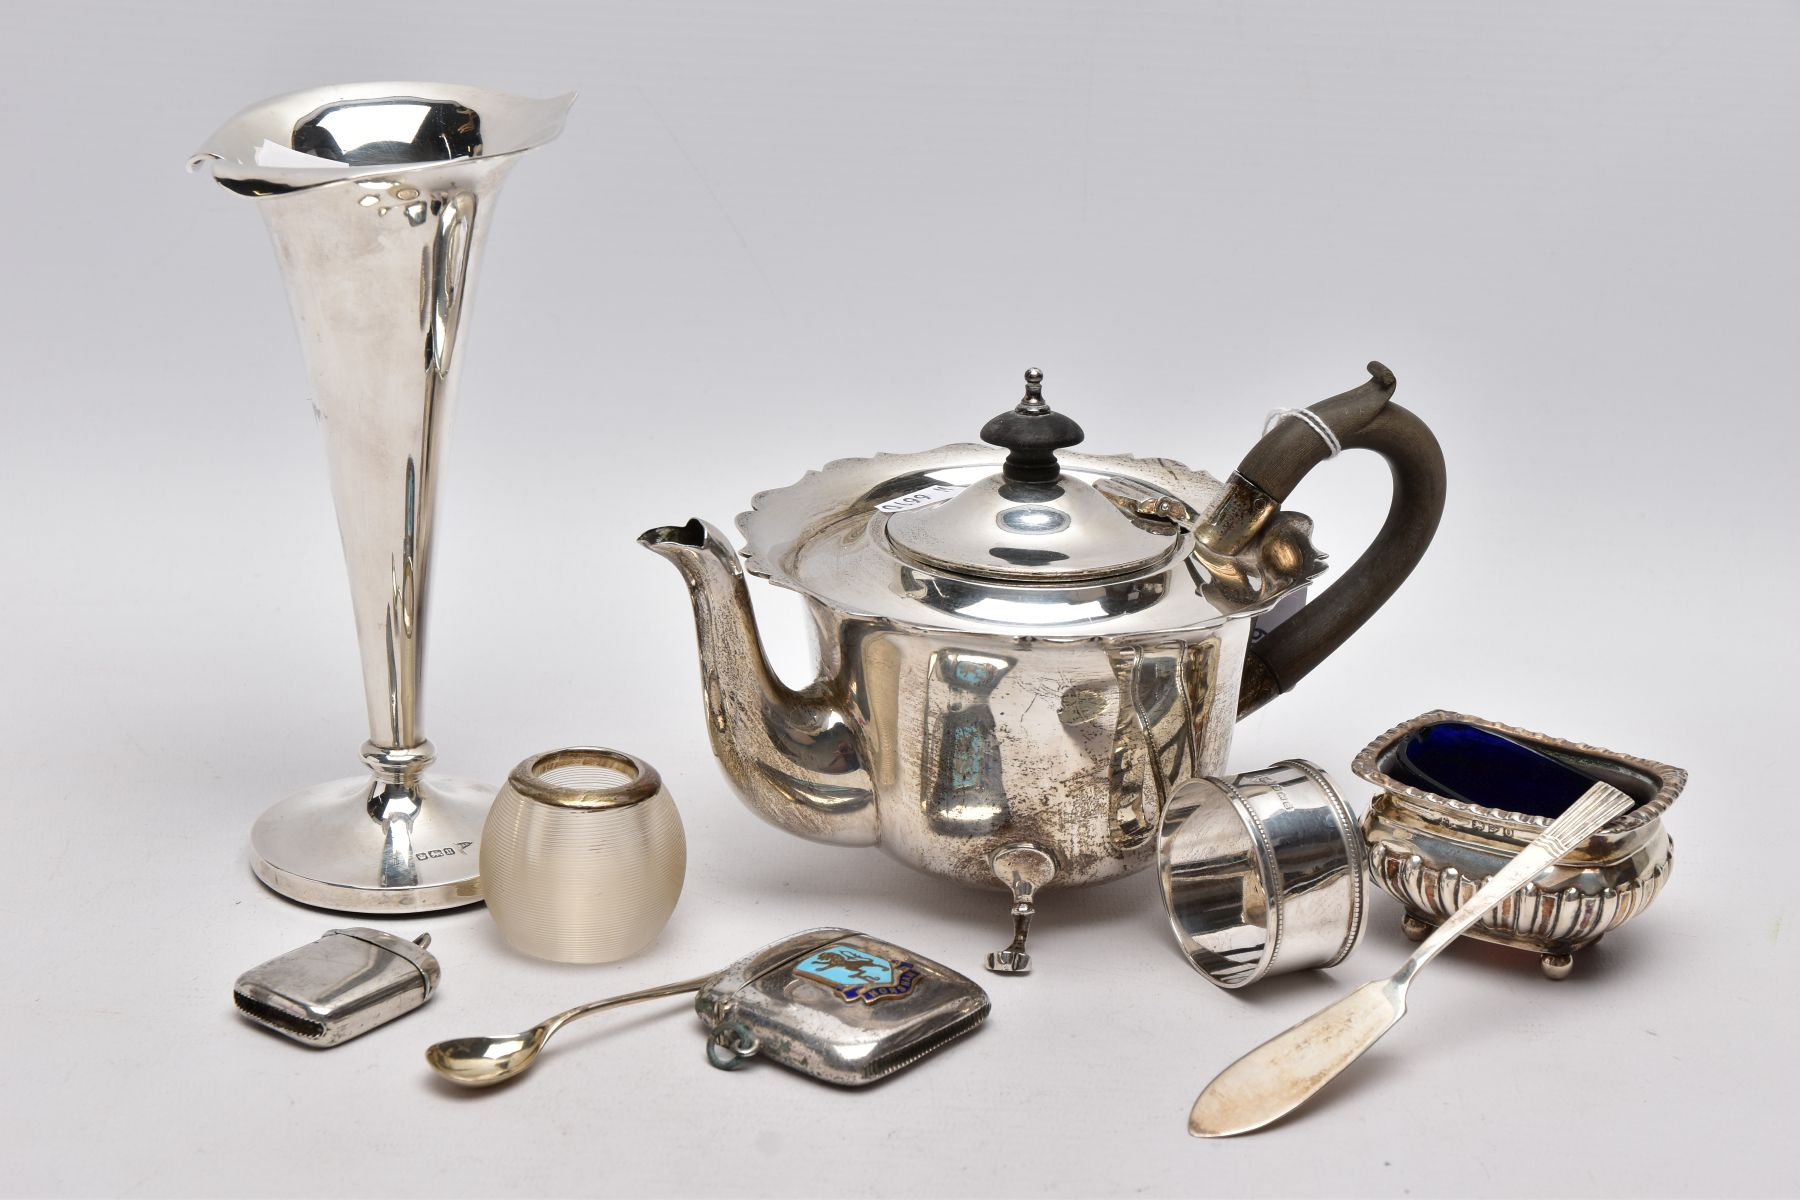 A SELECTION OF SILVER AND WHITE METAL ITEMS, to include an early 20th century AF silver teapot, wavy